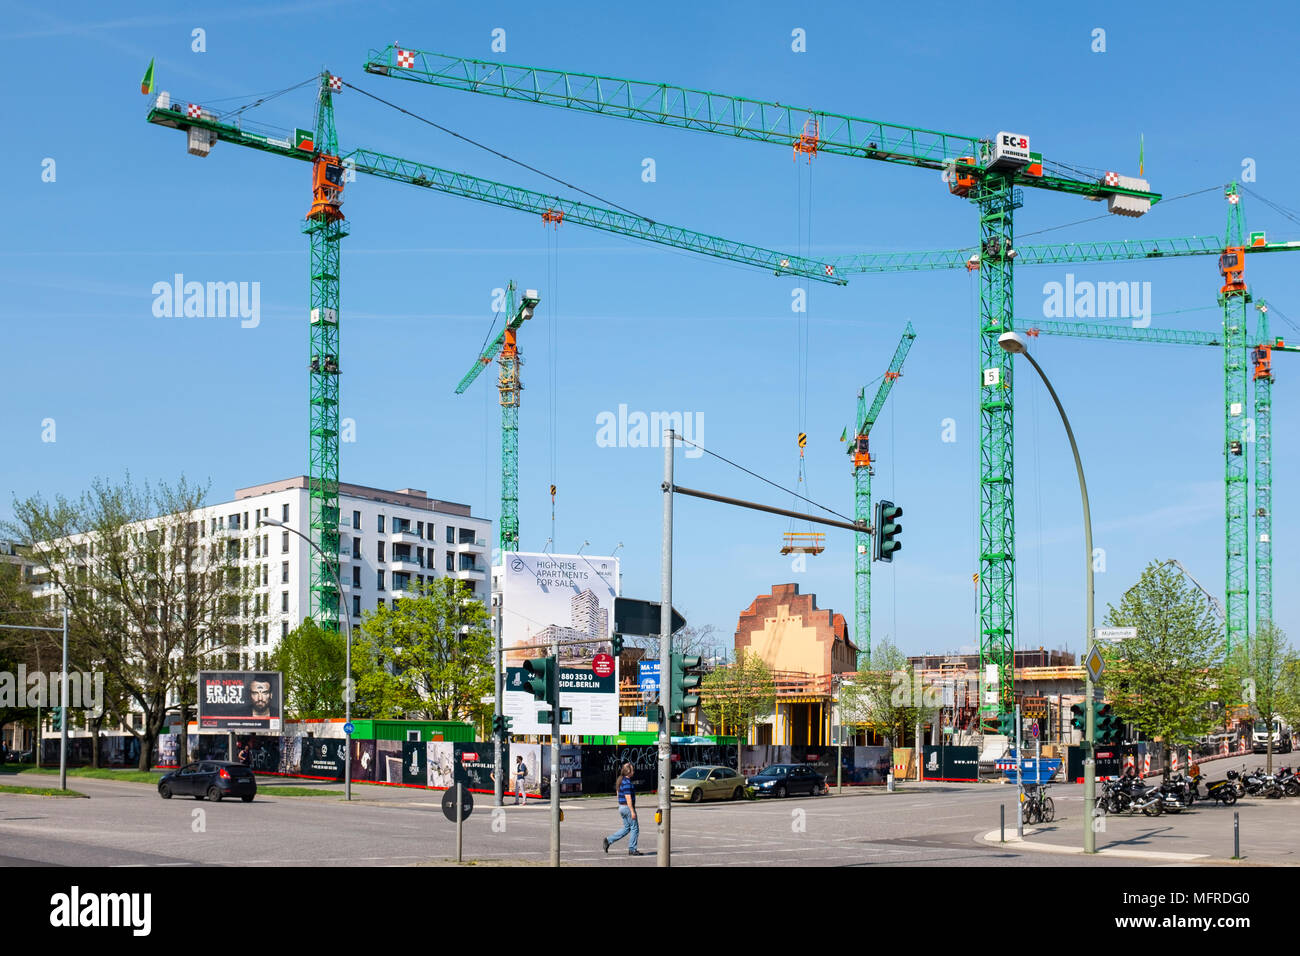 New luxury high-rise  apartment building (Upside) under construction beside East Side Gallery in Friedrichshain, Berlin, Germany. Property development Stock Photo